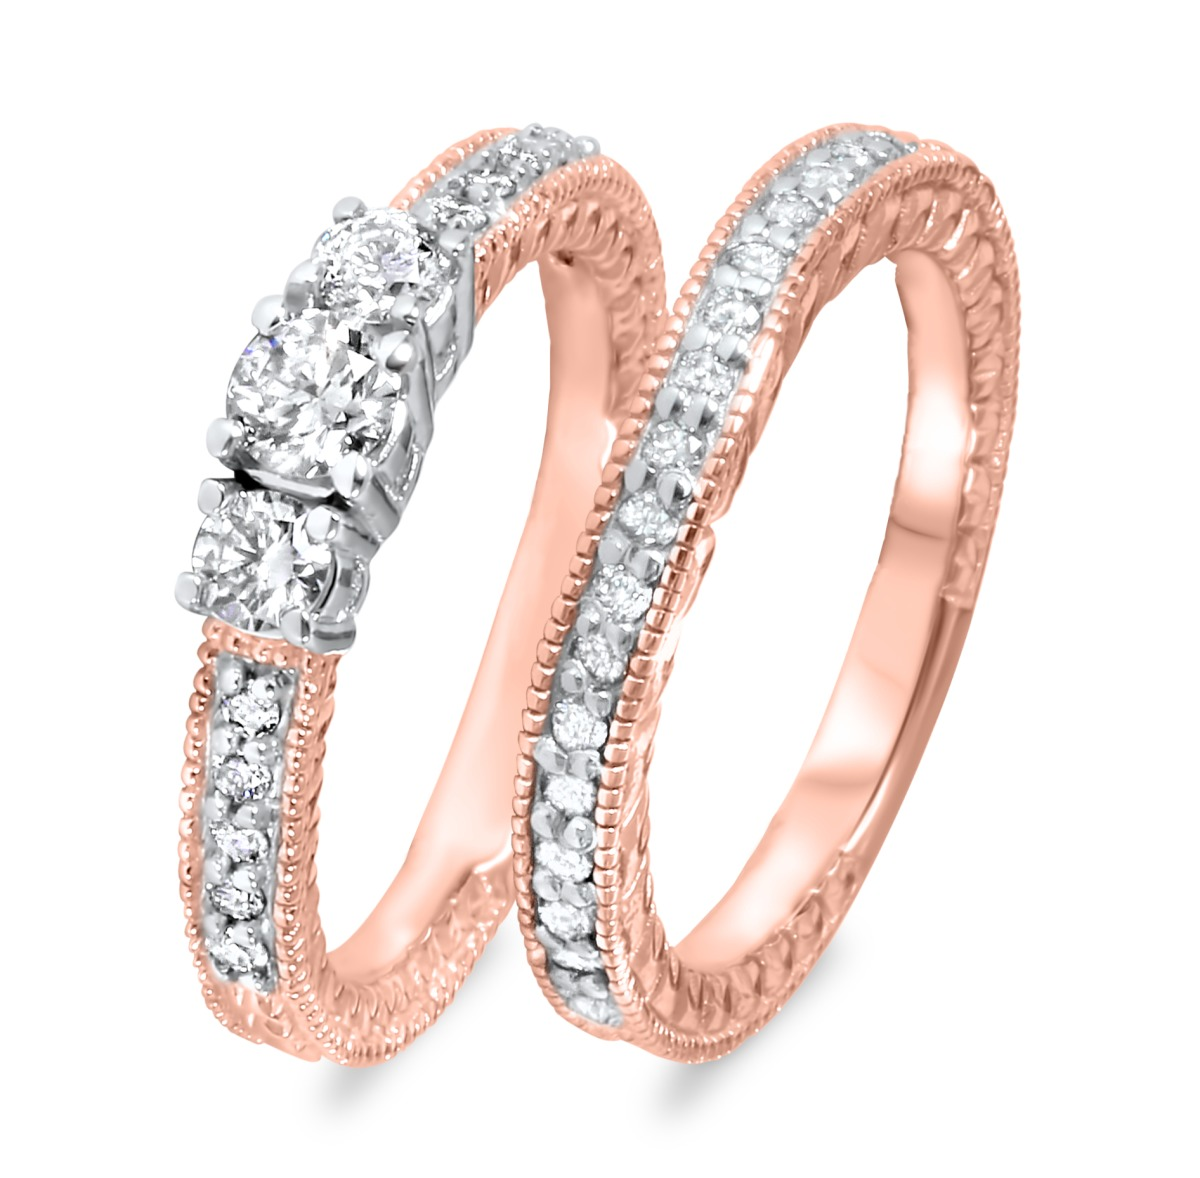 2/3 CT. T.W. Round Cut Diamond Ladies Bridal Wedding Ring Set 14K Rose Gold